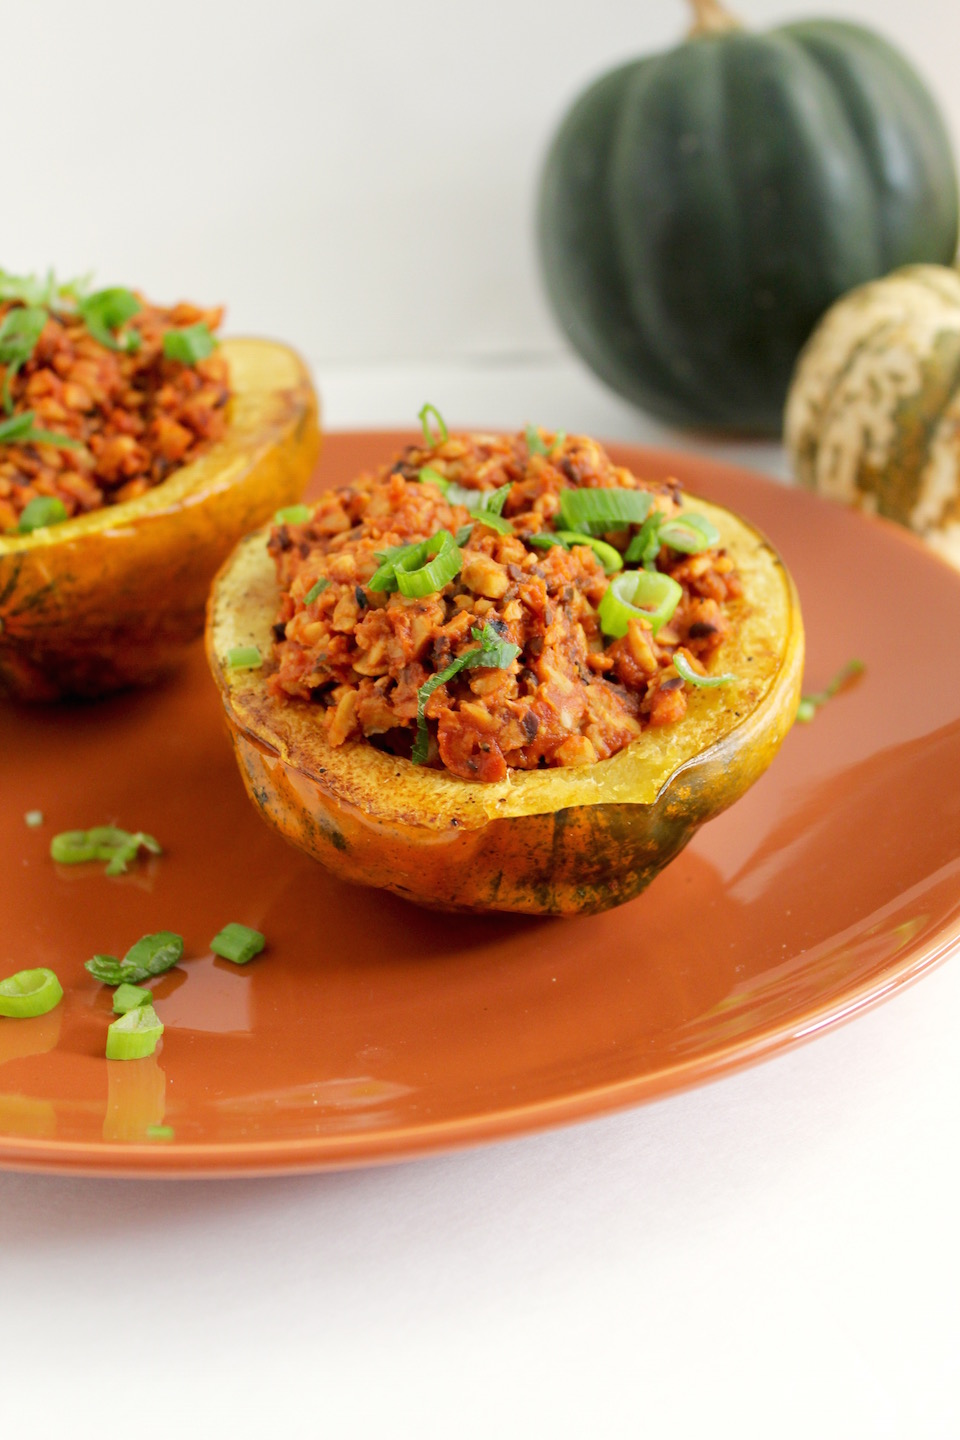 Smoky Tempeh Stuffed Acorn Squash on Orange Plate